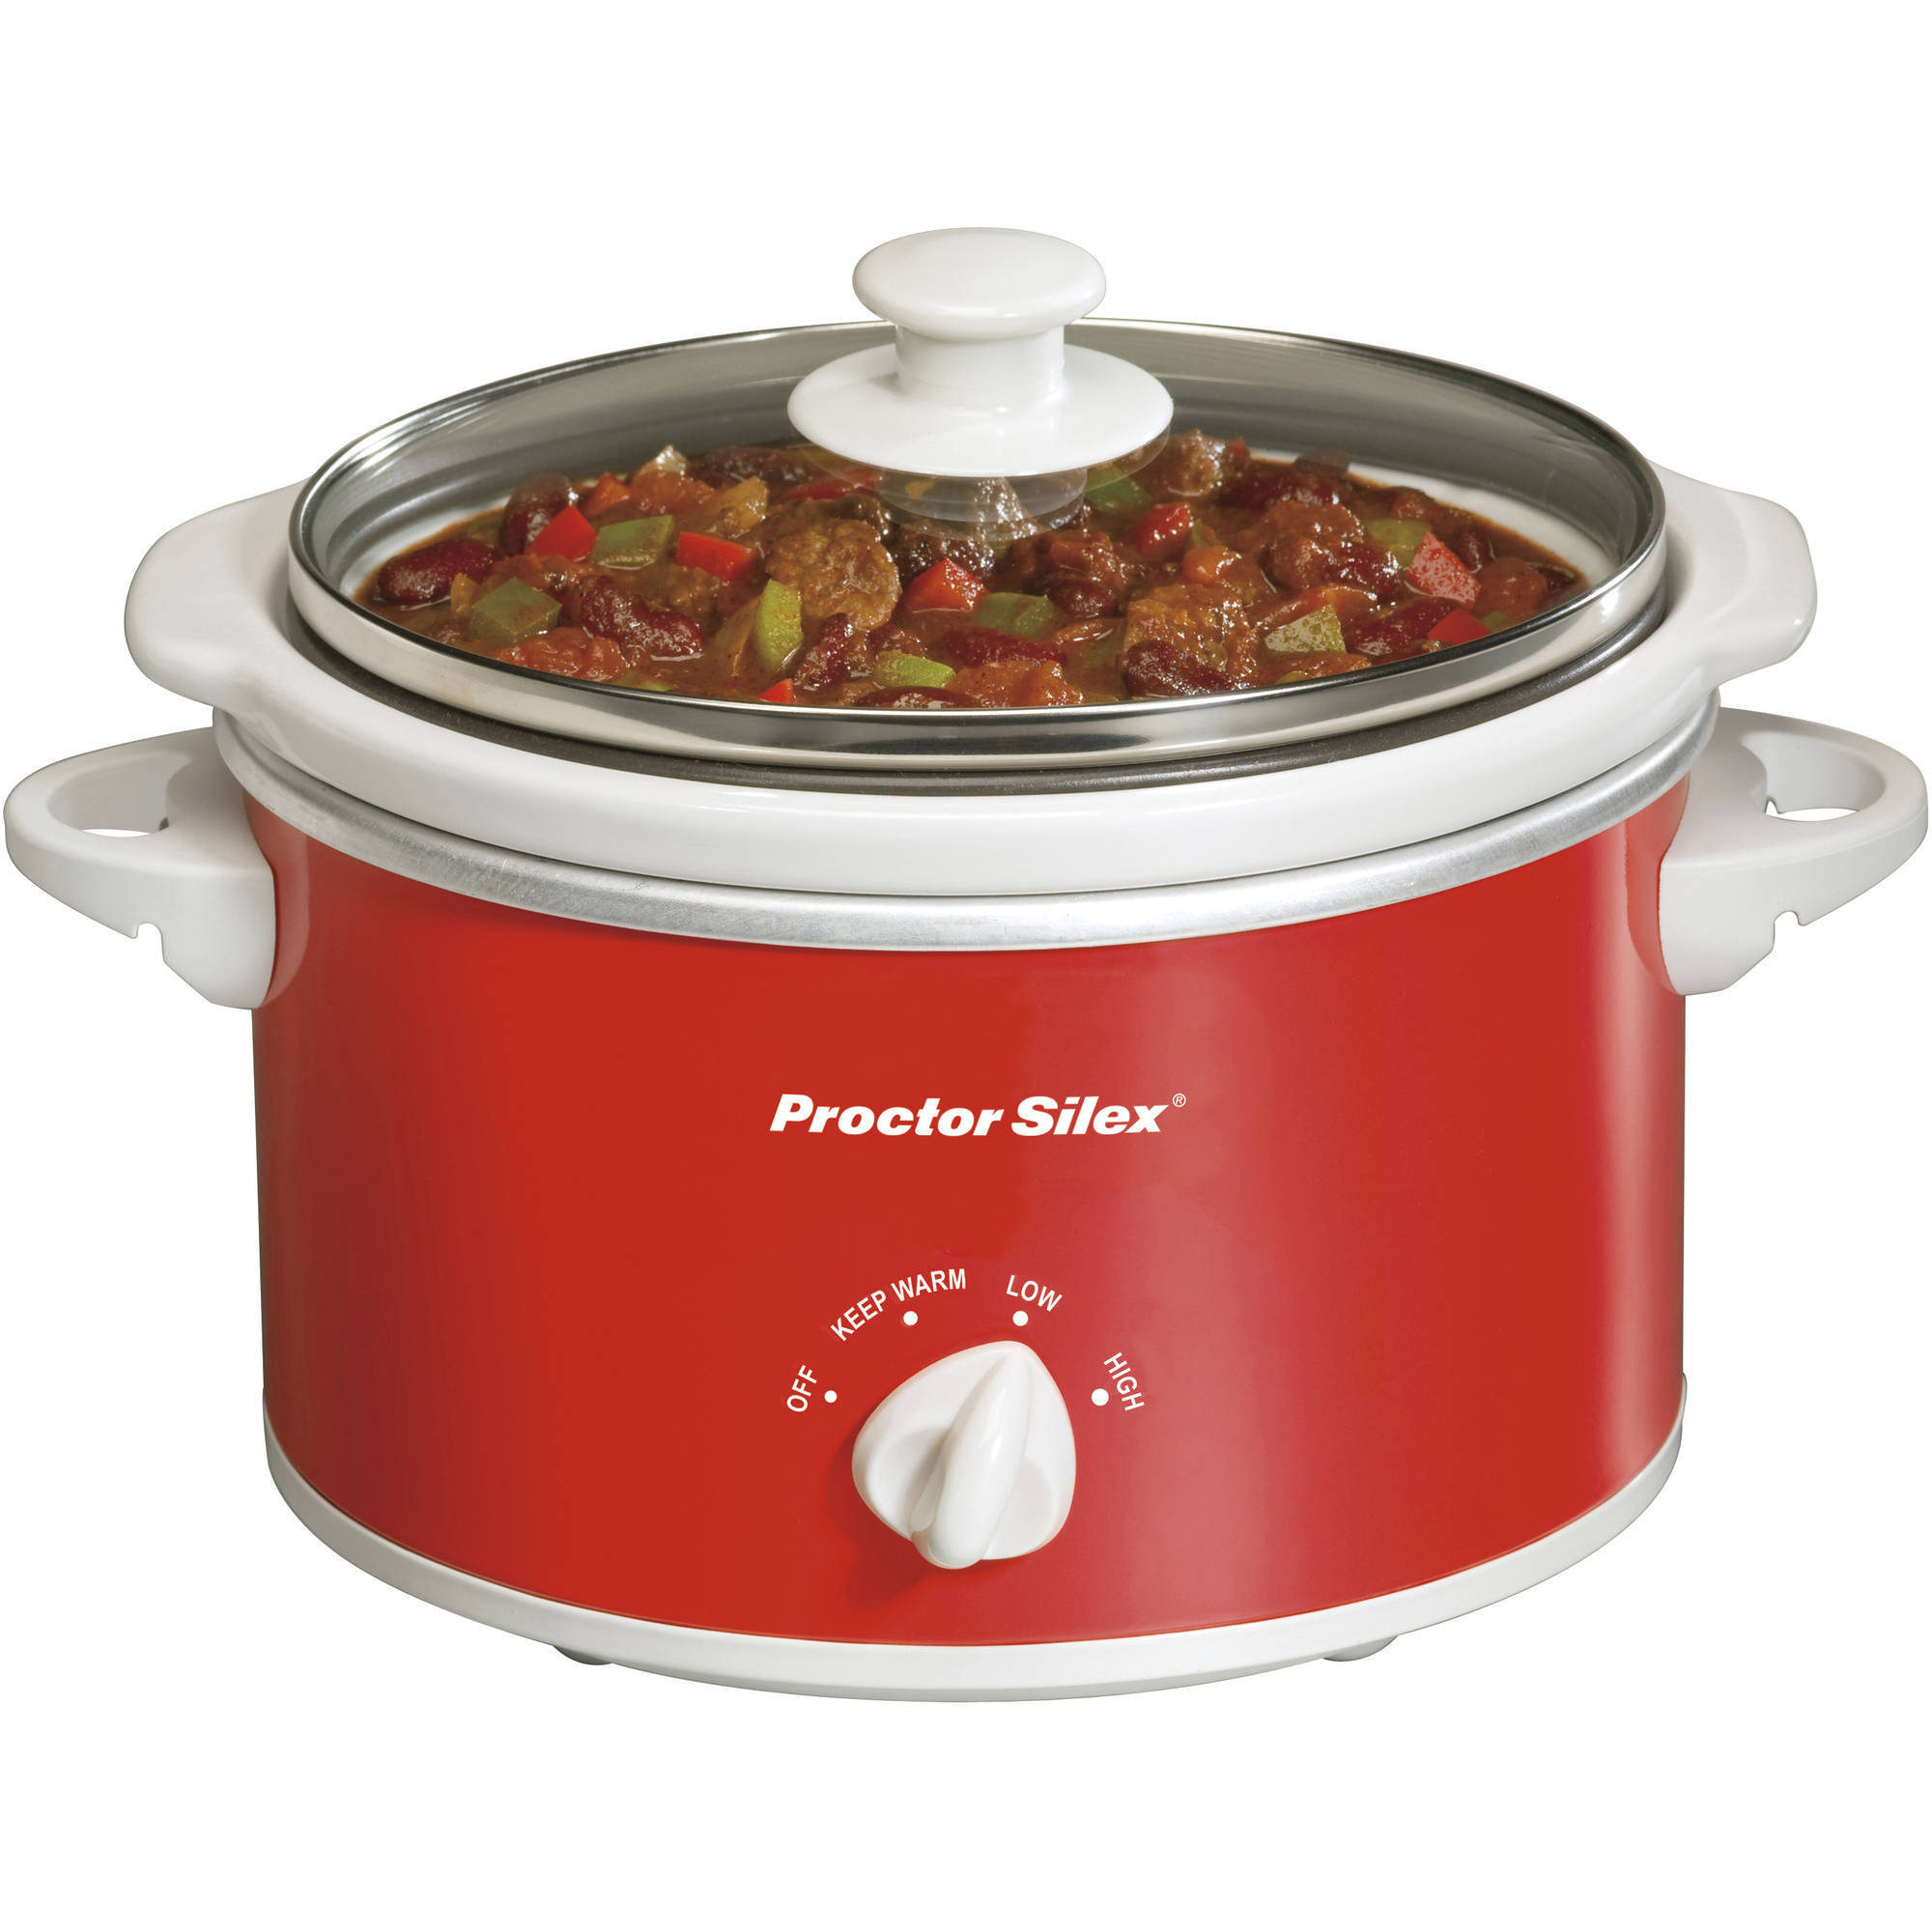 Proctor Silex 1.5 Quart Portable Oval Slow Cooker | Model# 33111Y